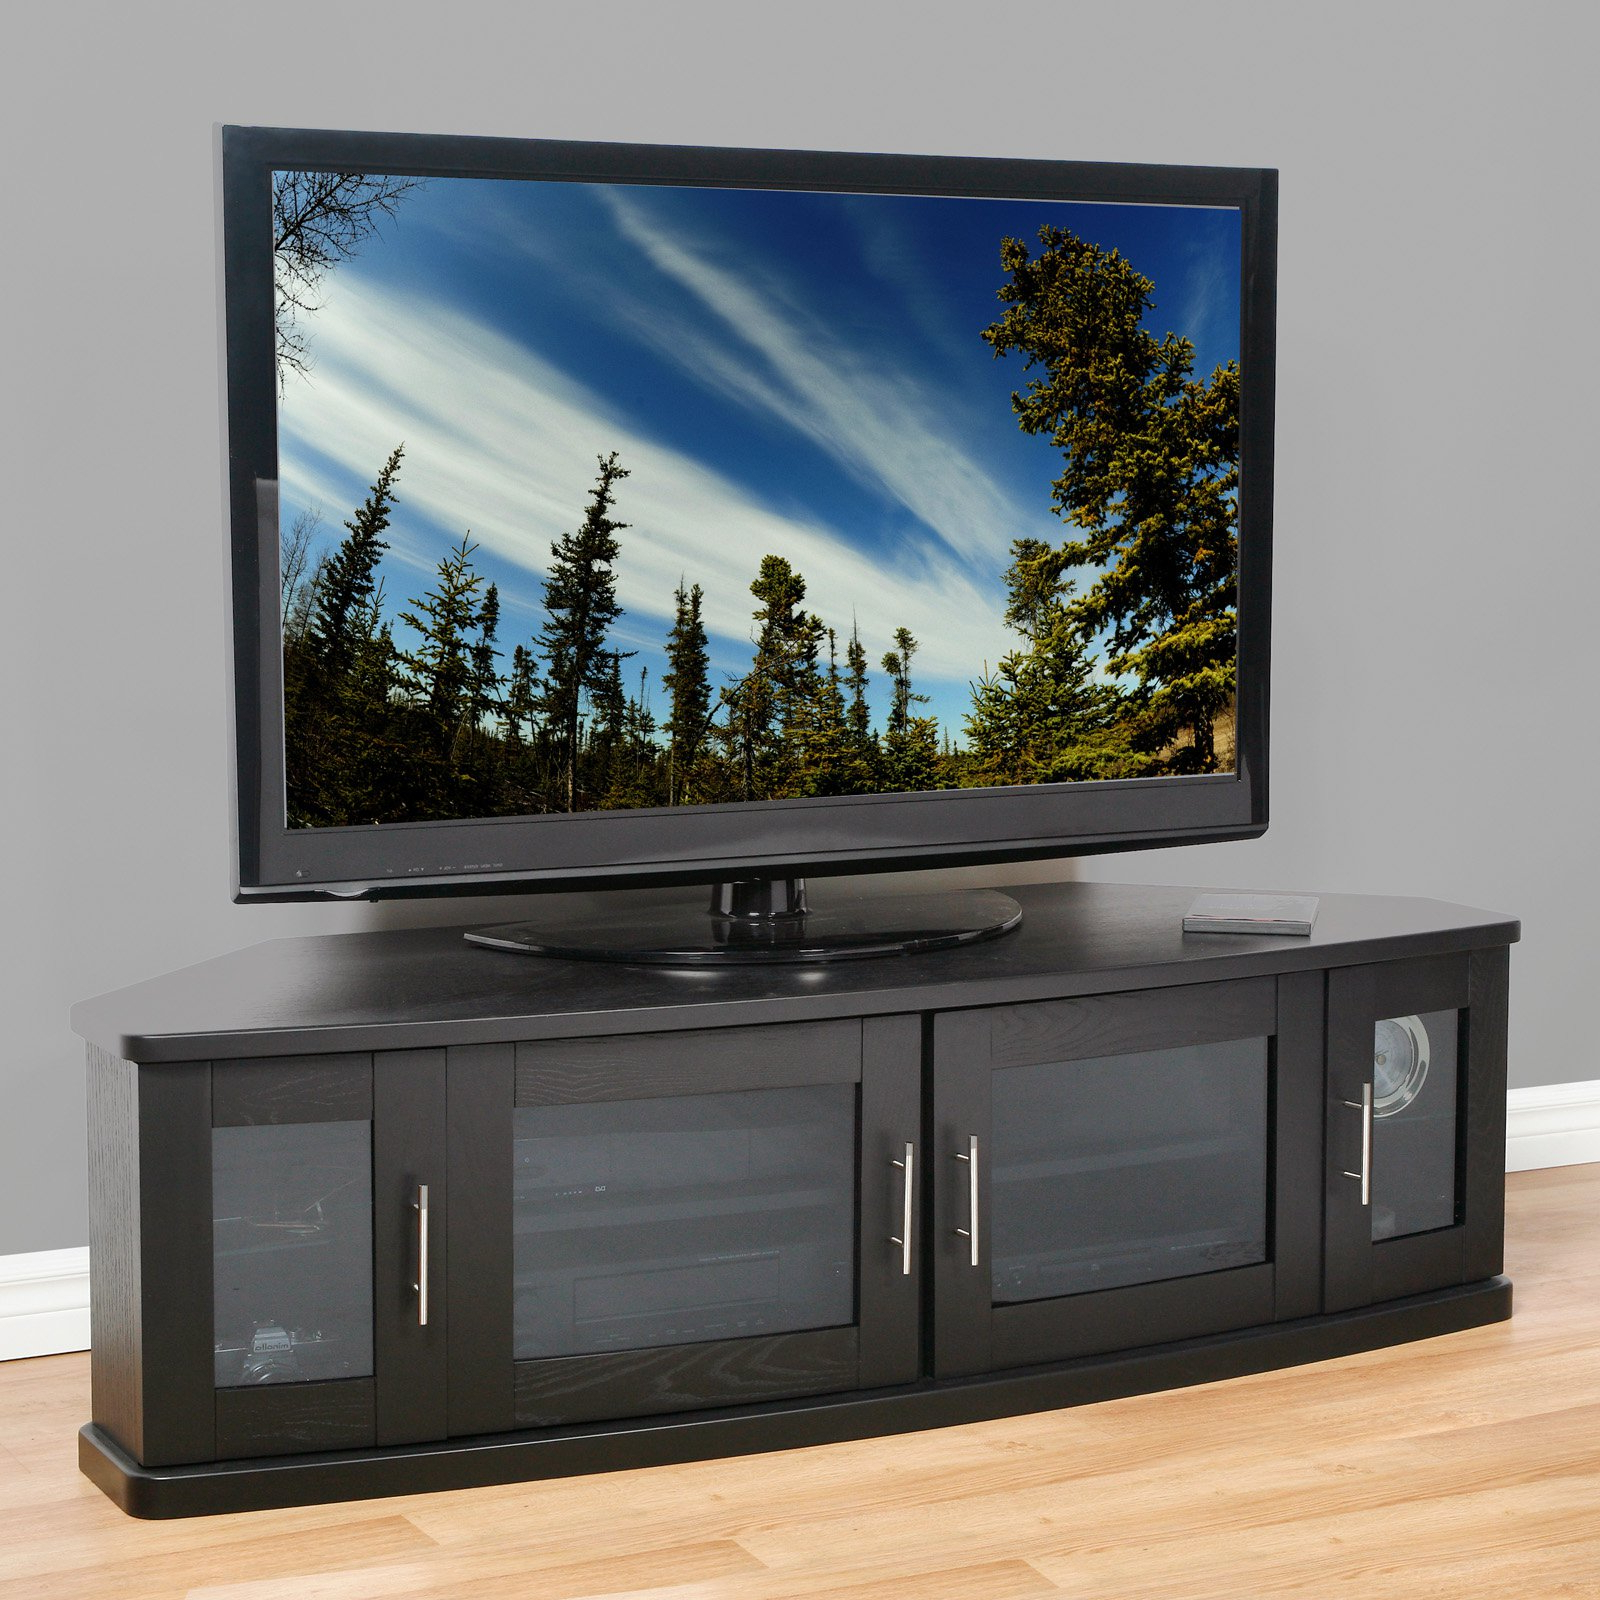 Plateau Newport 62 Inch Corner Tv Stand In Black – Walmart With Regard To Most Recent Corner Tv Stands For 55 Inch Tv (View 10 of 20)